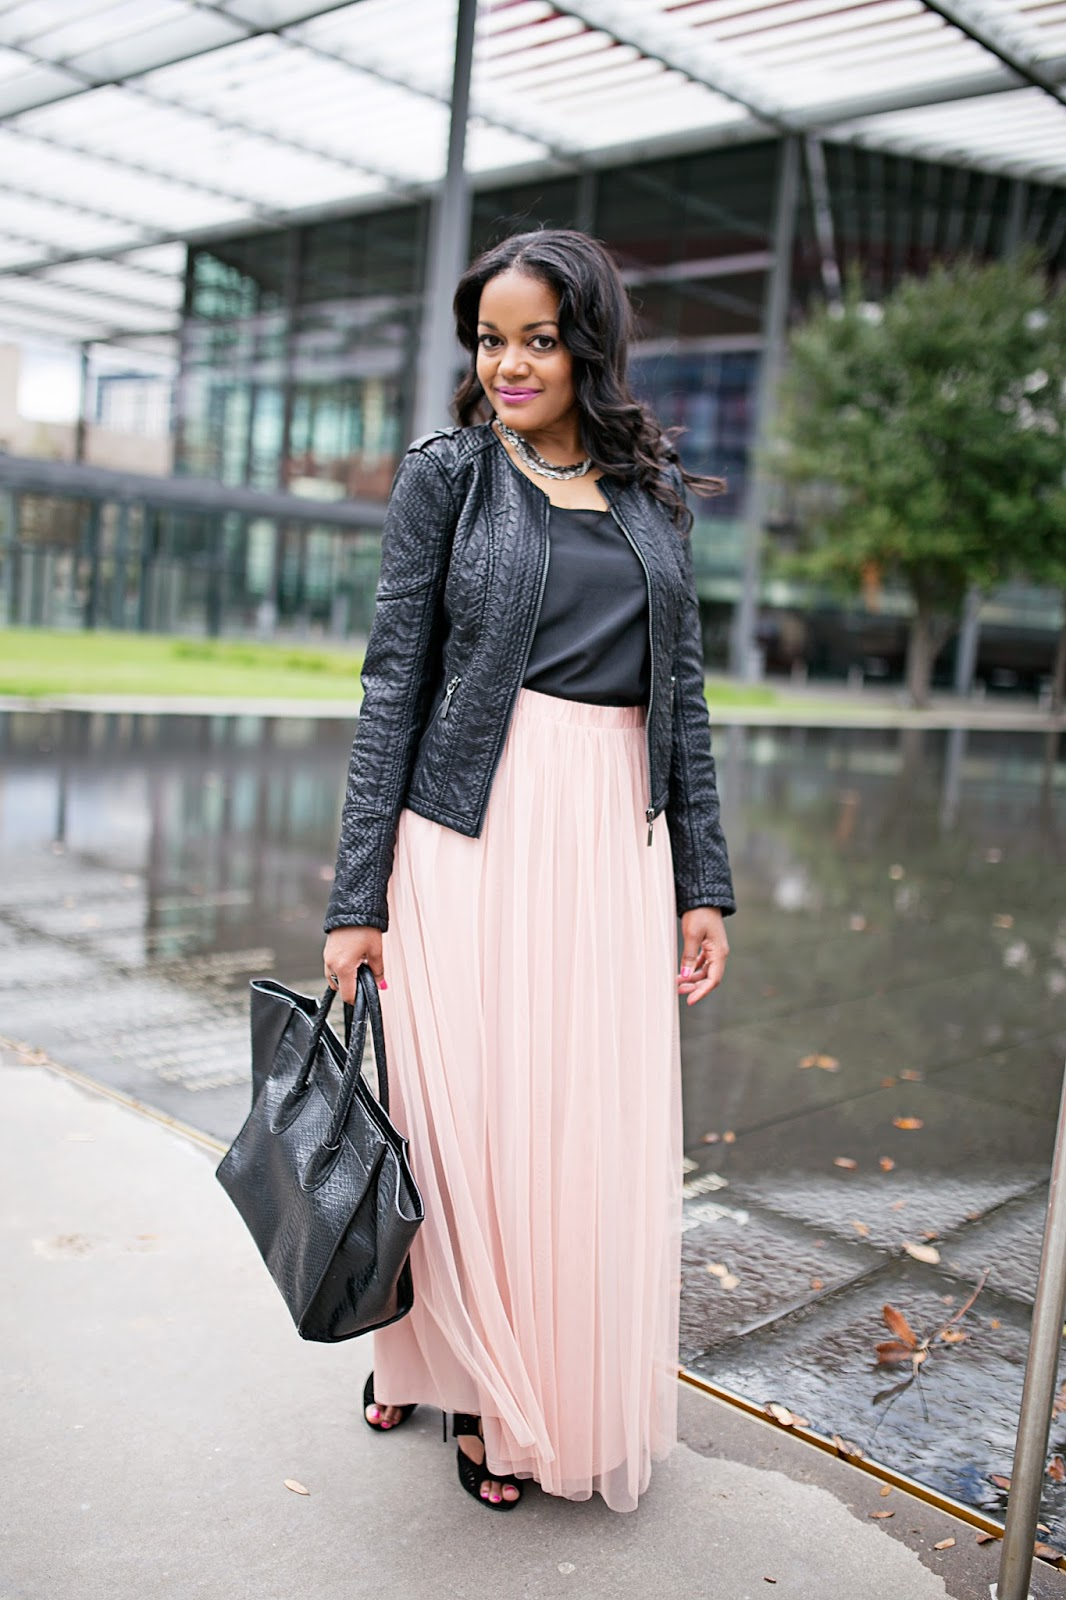 The Leather Jacket Meets Tulle Skirt